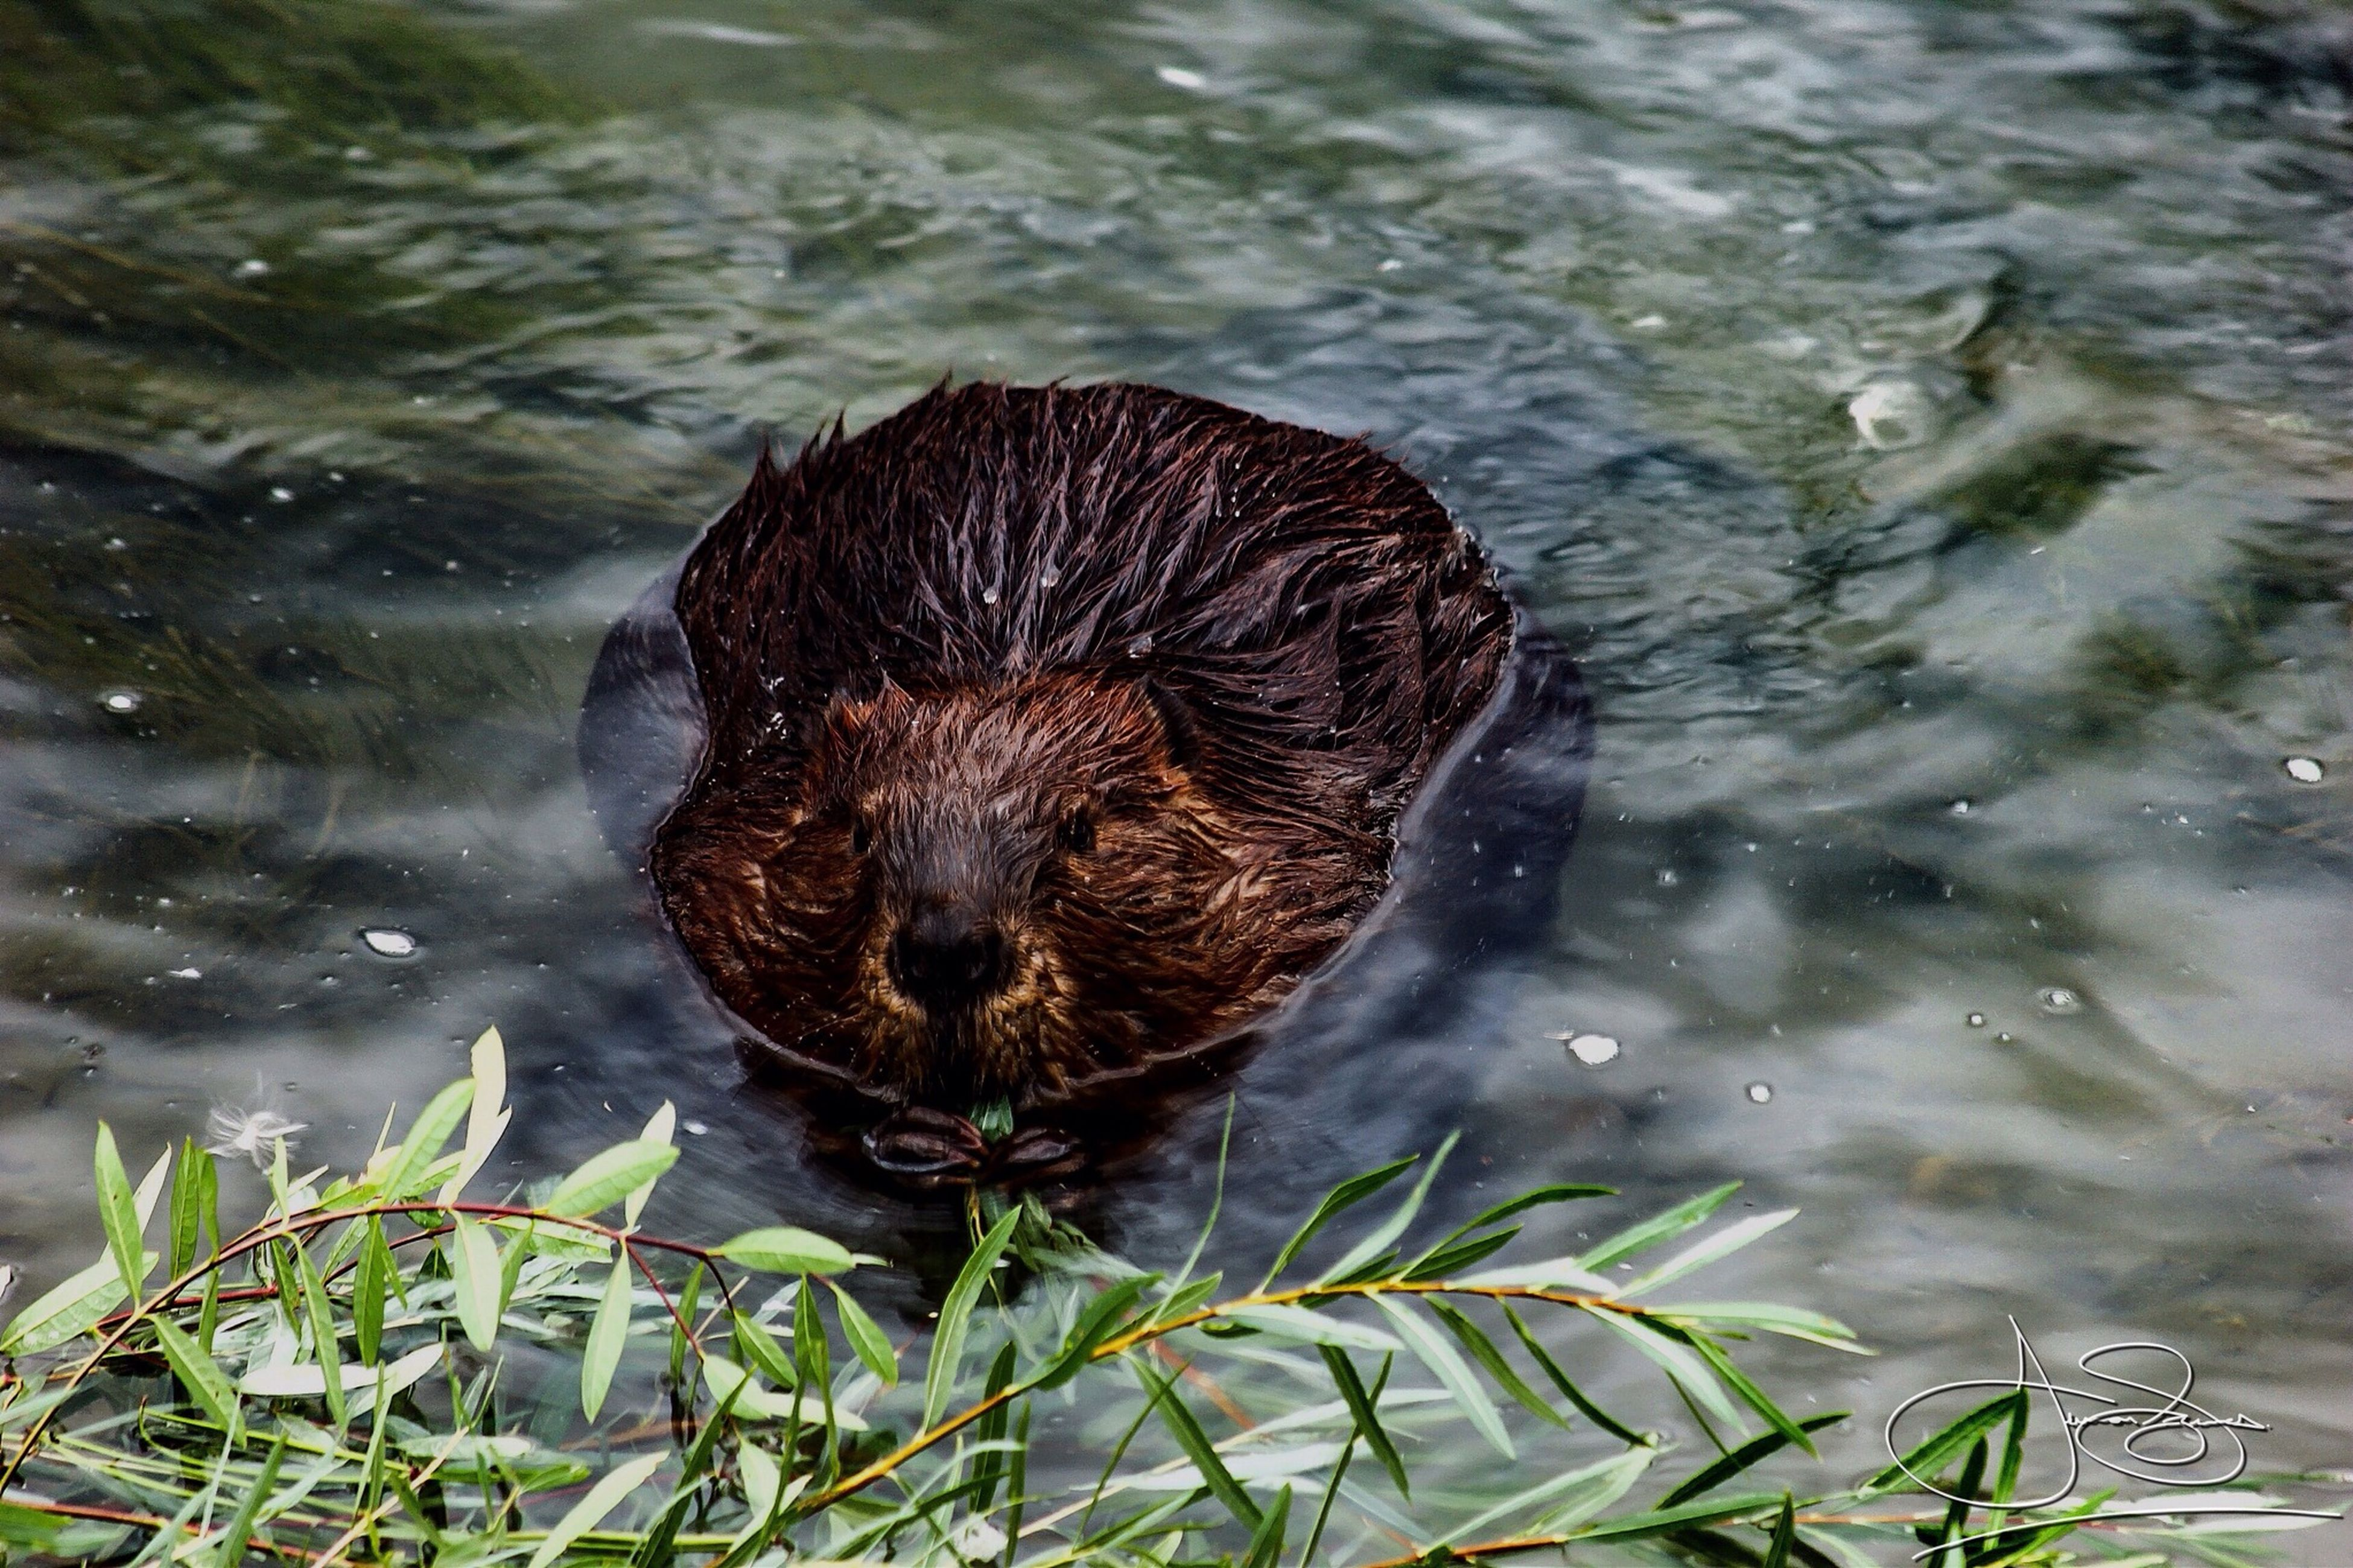 animal themes, one animal, water, animals in the wild, mammal, wildlife, lake, high angle view, wet, reflection, pets, outdoors, day, nature, swimming, dog, close-up, no people, waterfront, domestic animals